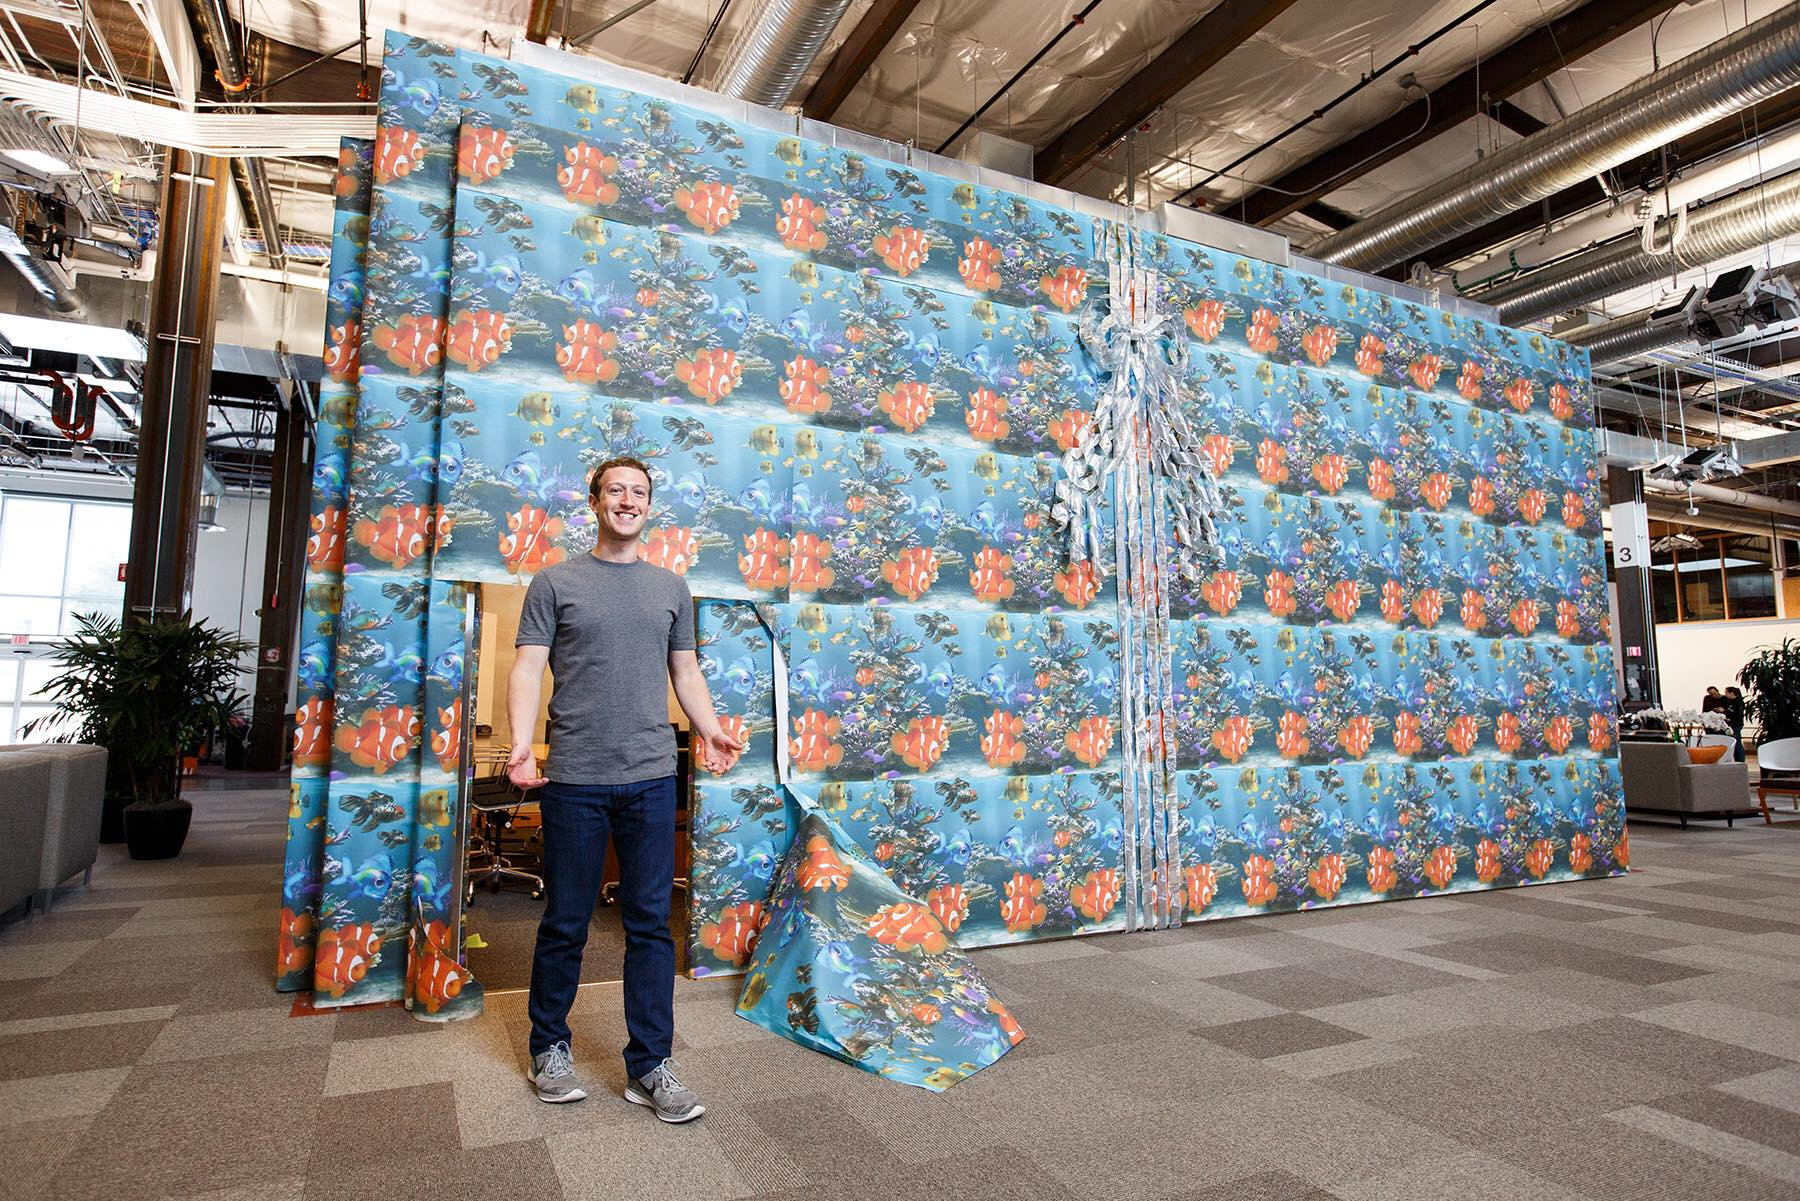 Mark Zuckerberg celebrating April Fools Day at Facebook Building 20